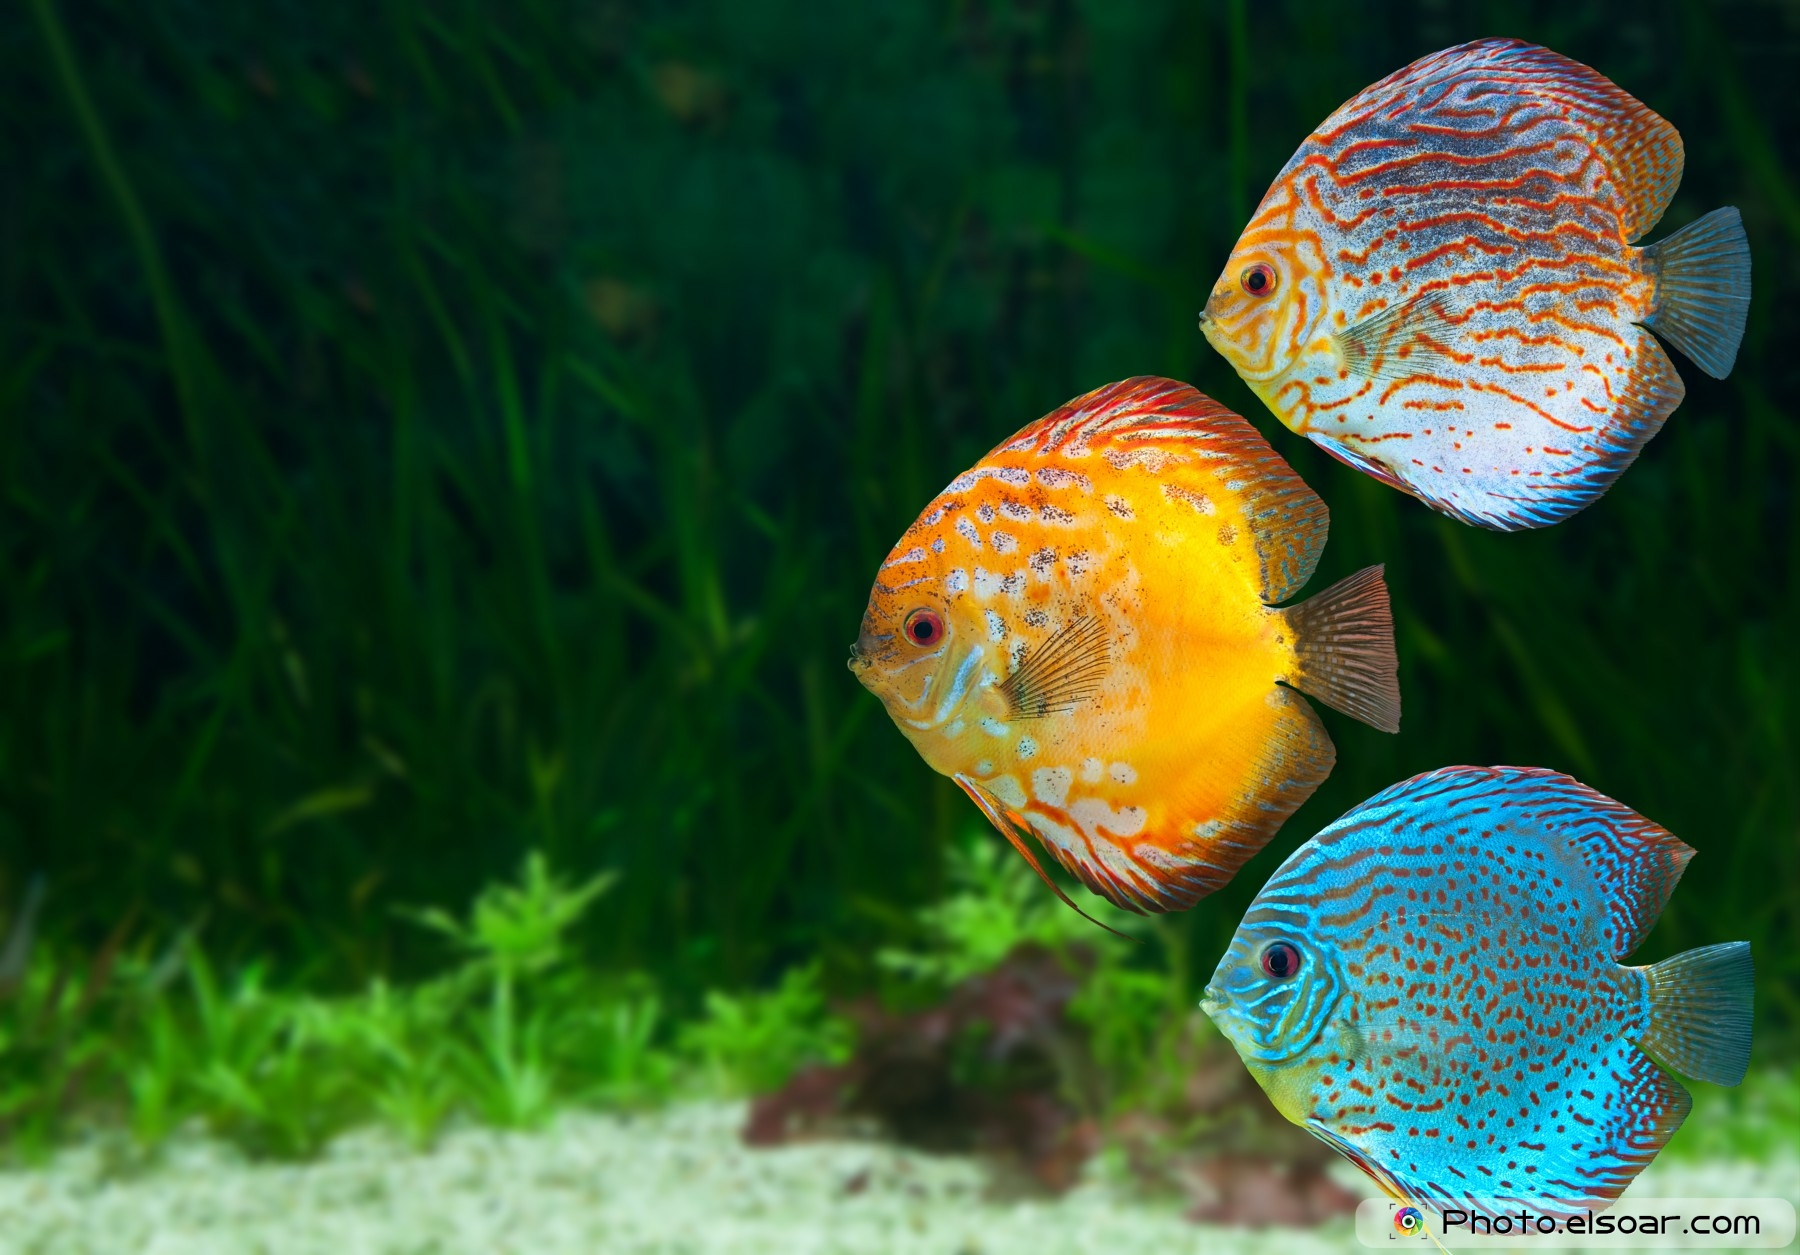 Freshwater fish amazon - Three Bright Discus Freshwater Fish Native To The Amazon River